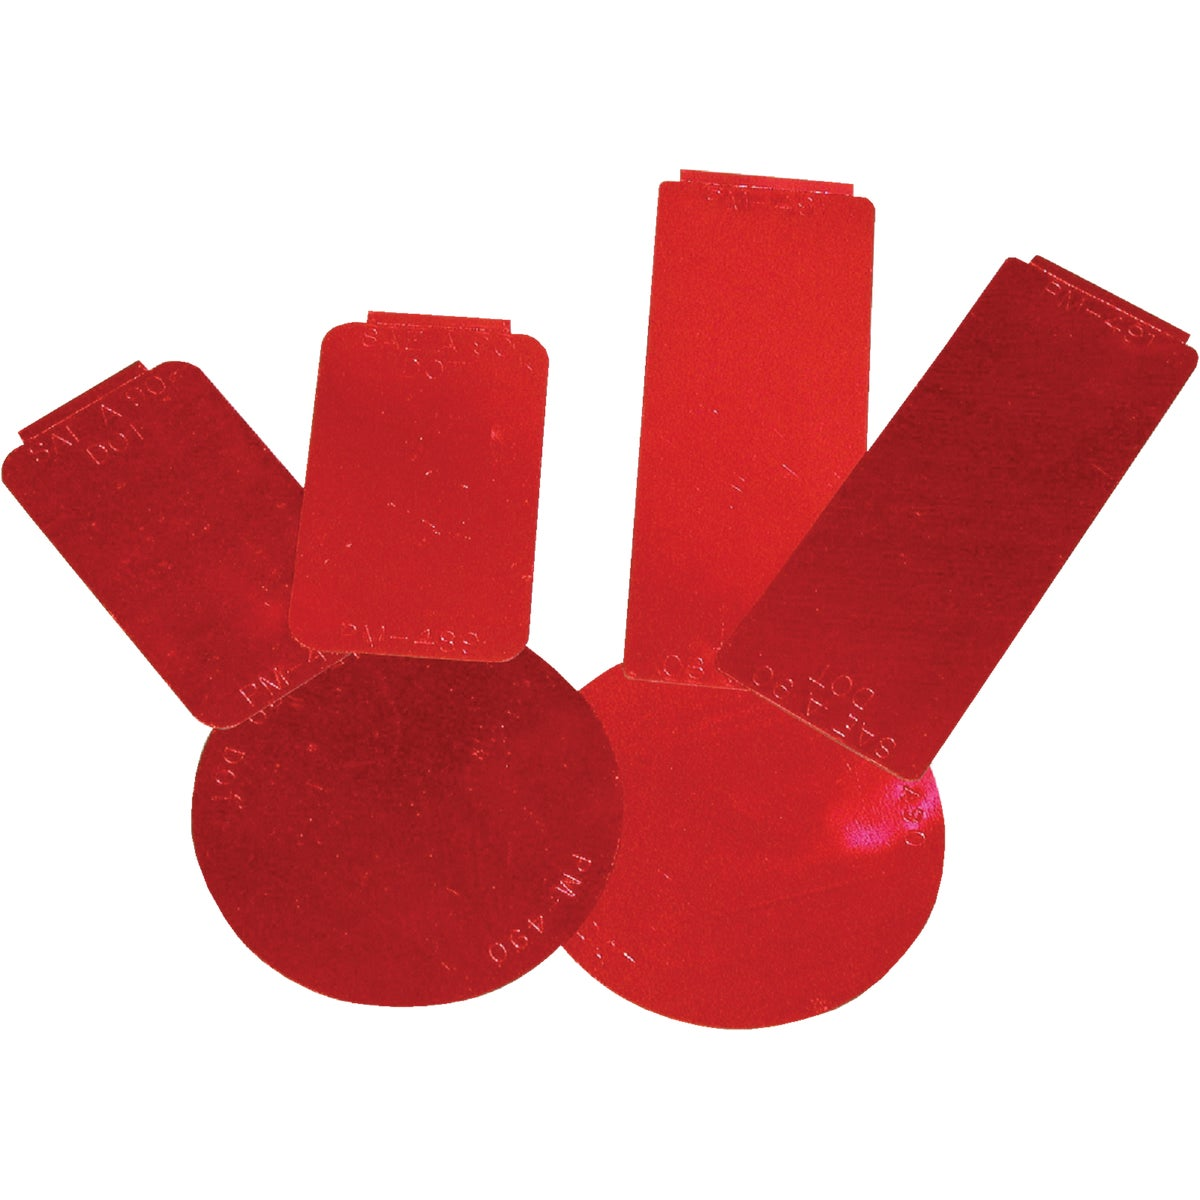 RED REFLECTOR KIT